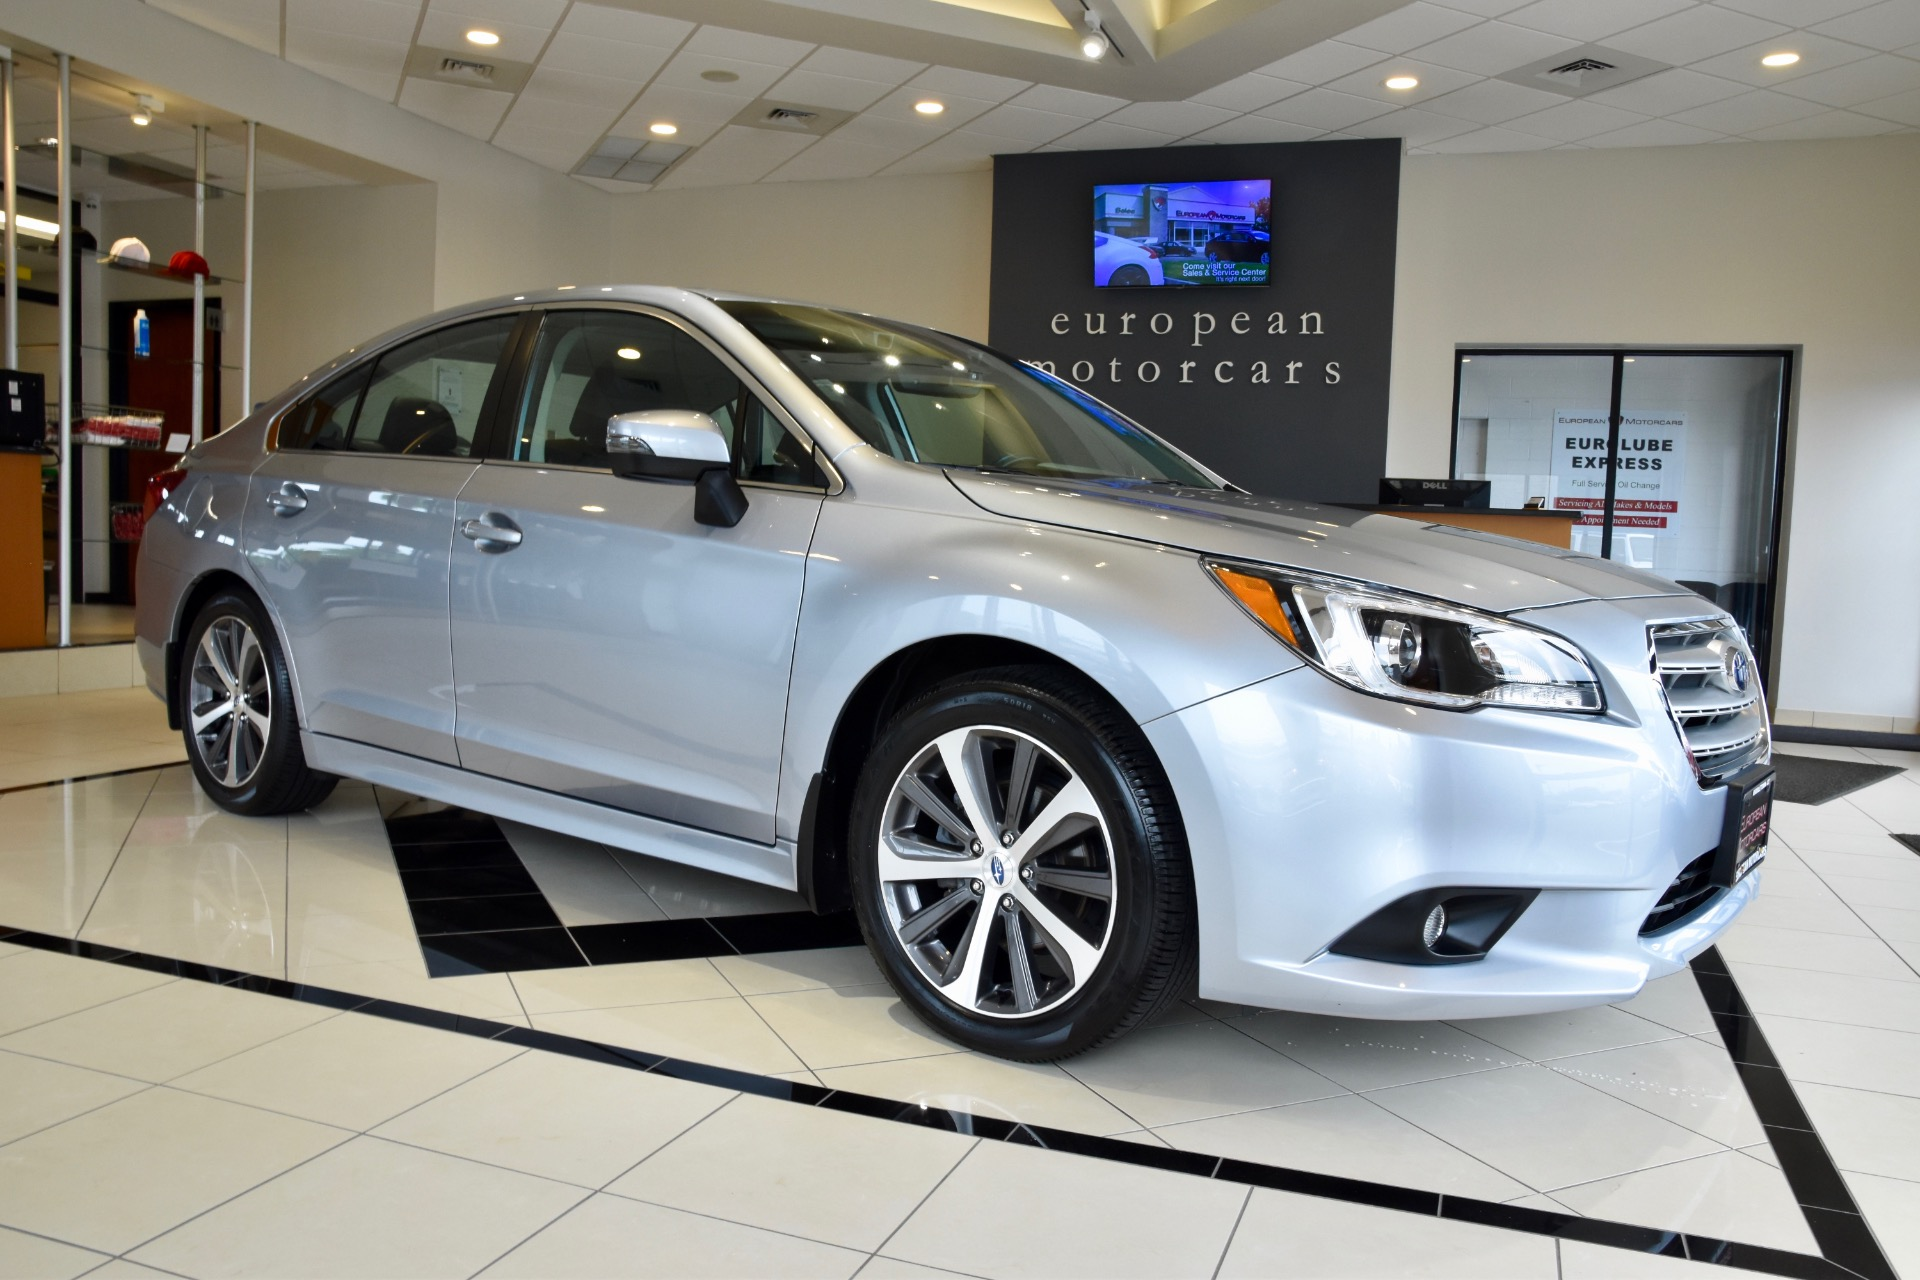 Subaru Legacy: To arm the system using power door locking switch